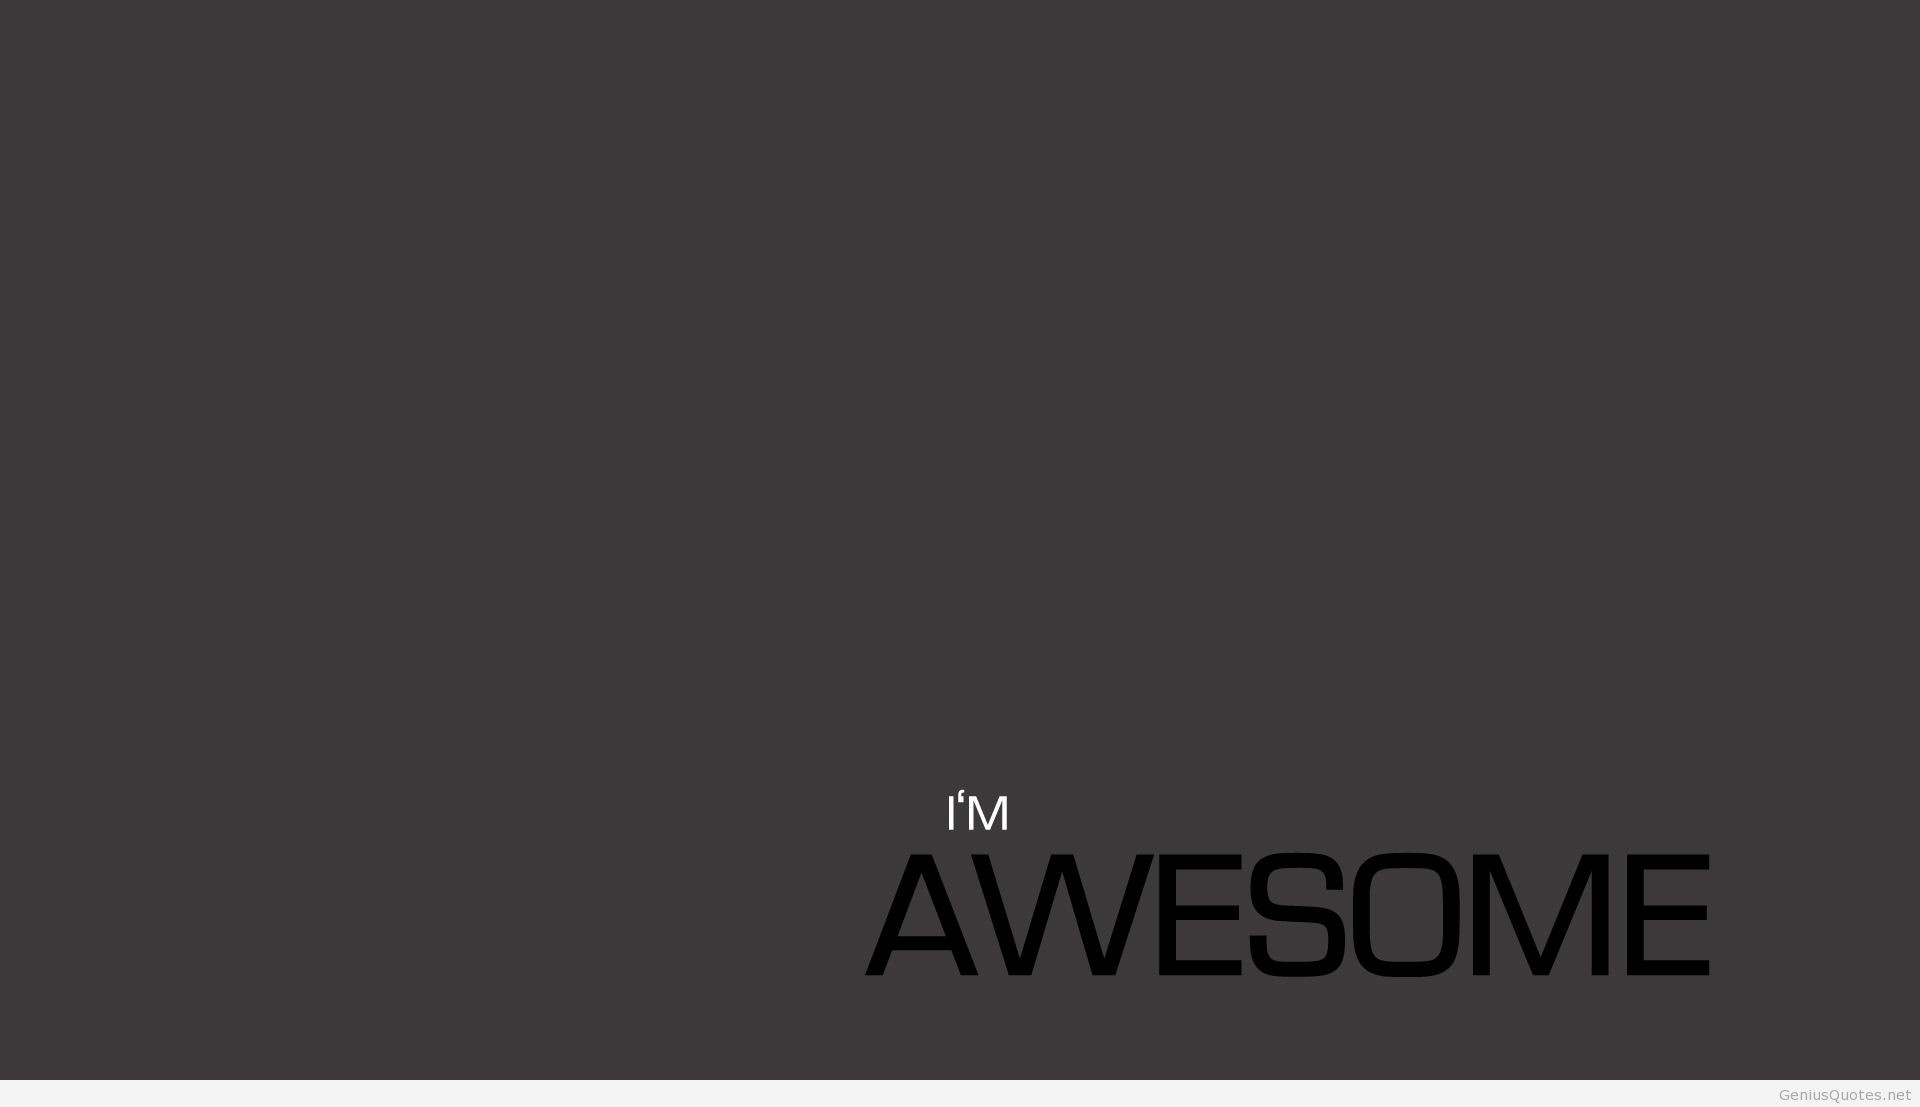 File Name : I am Awesome Quotes Wallpaper Picture